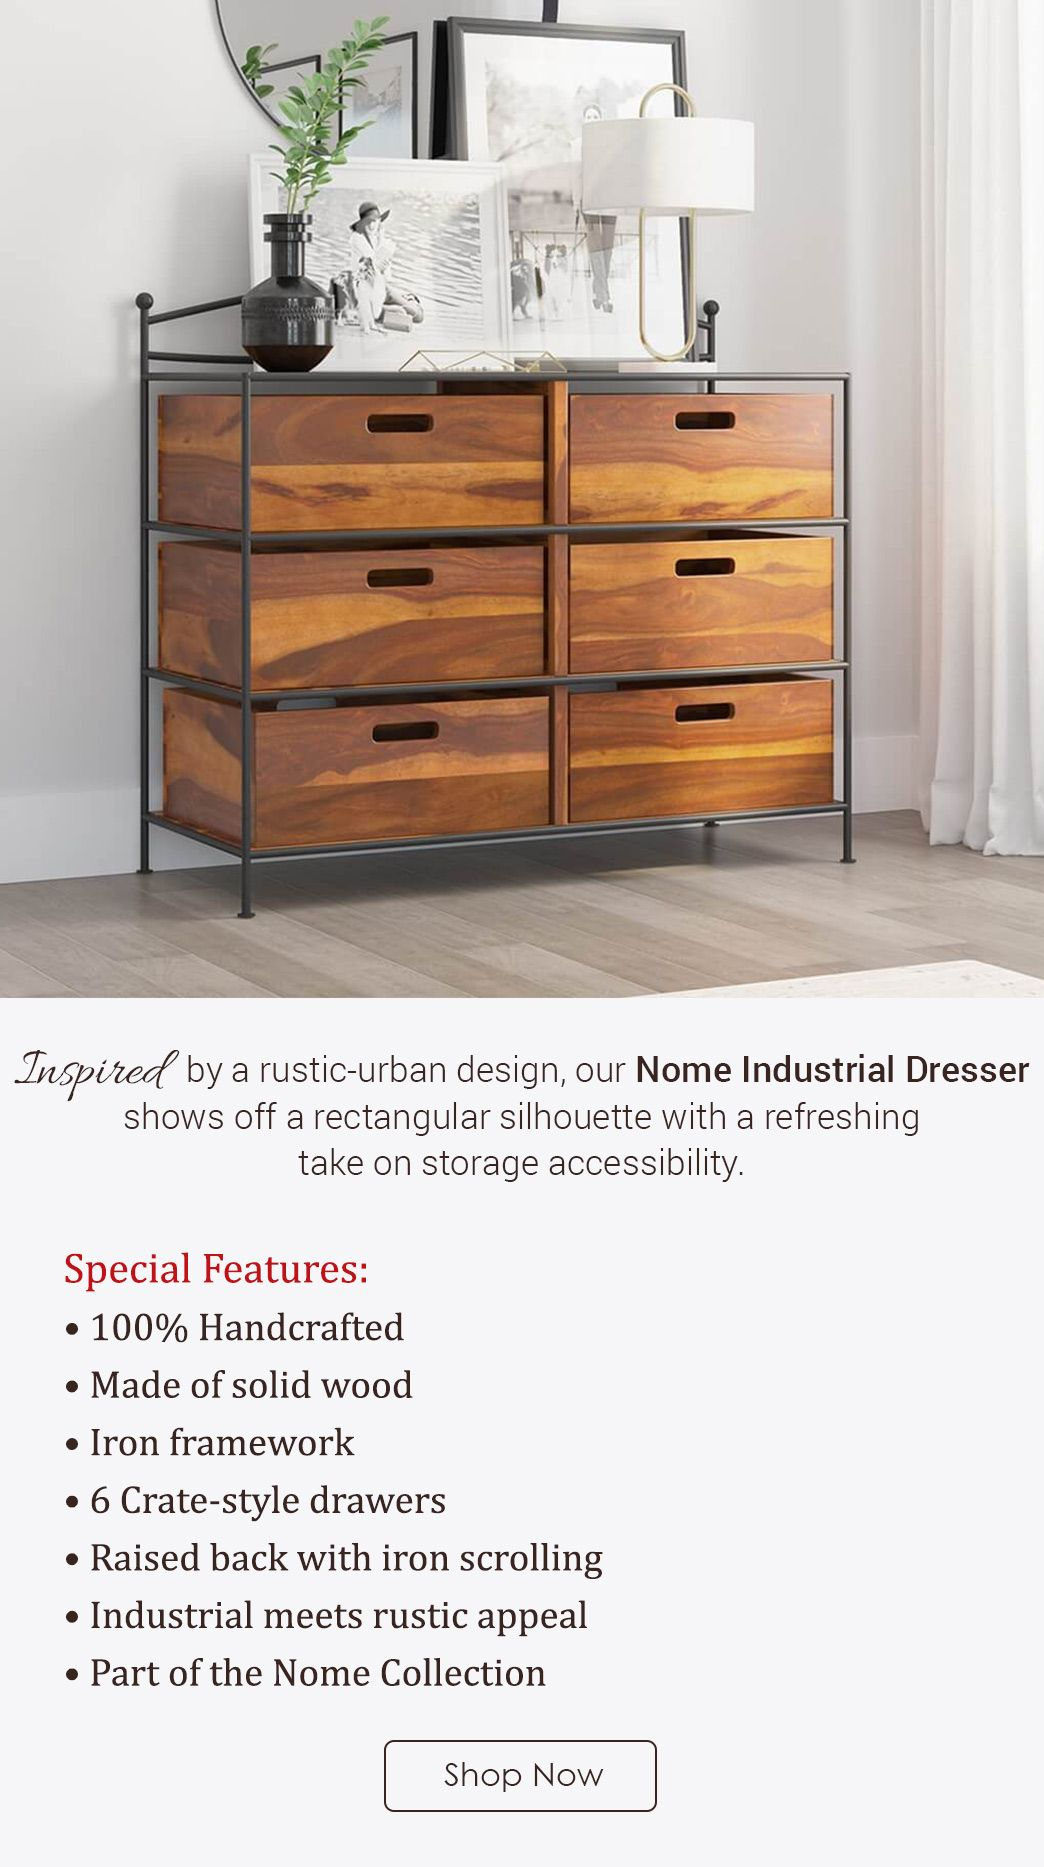 The rustic character of solid wood complements the